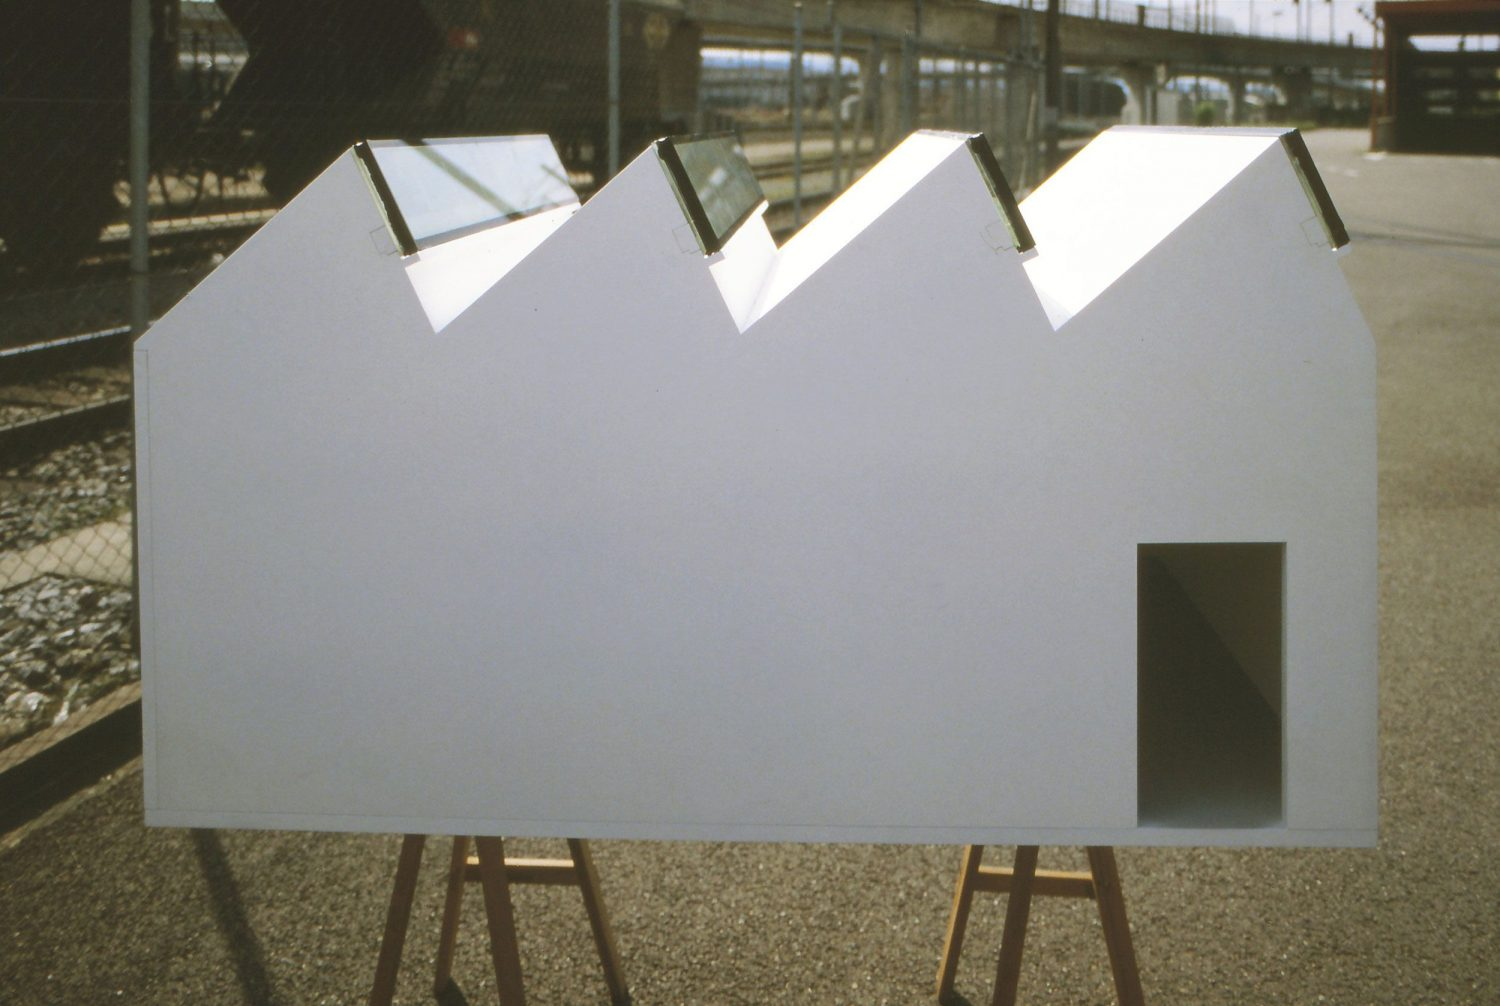 Model for light studies